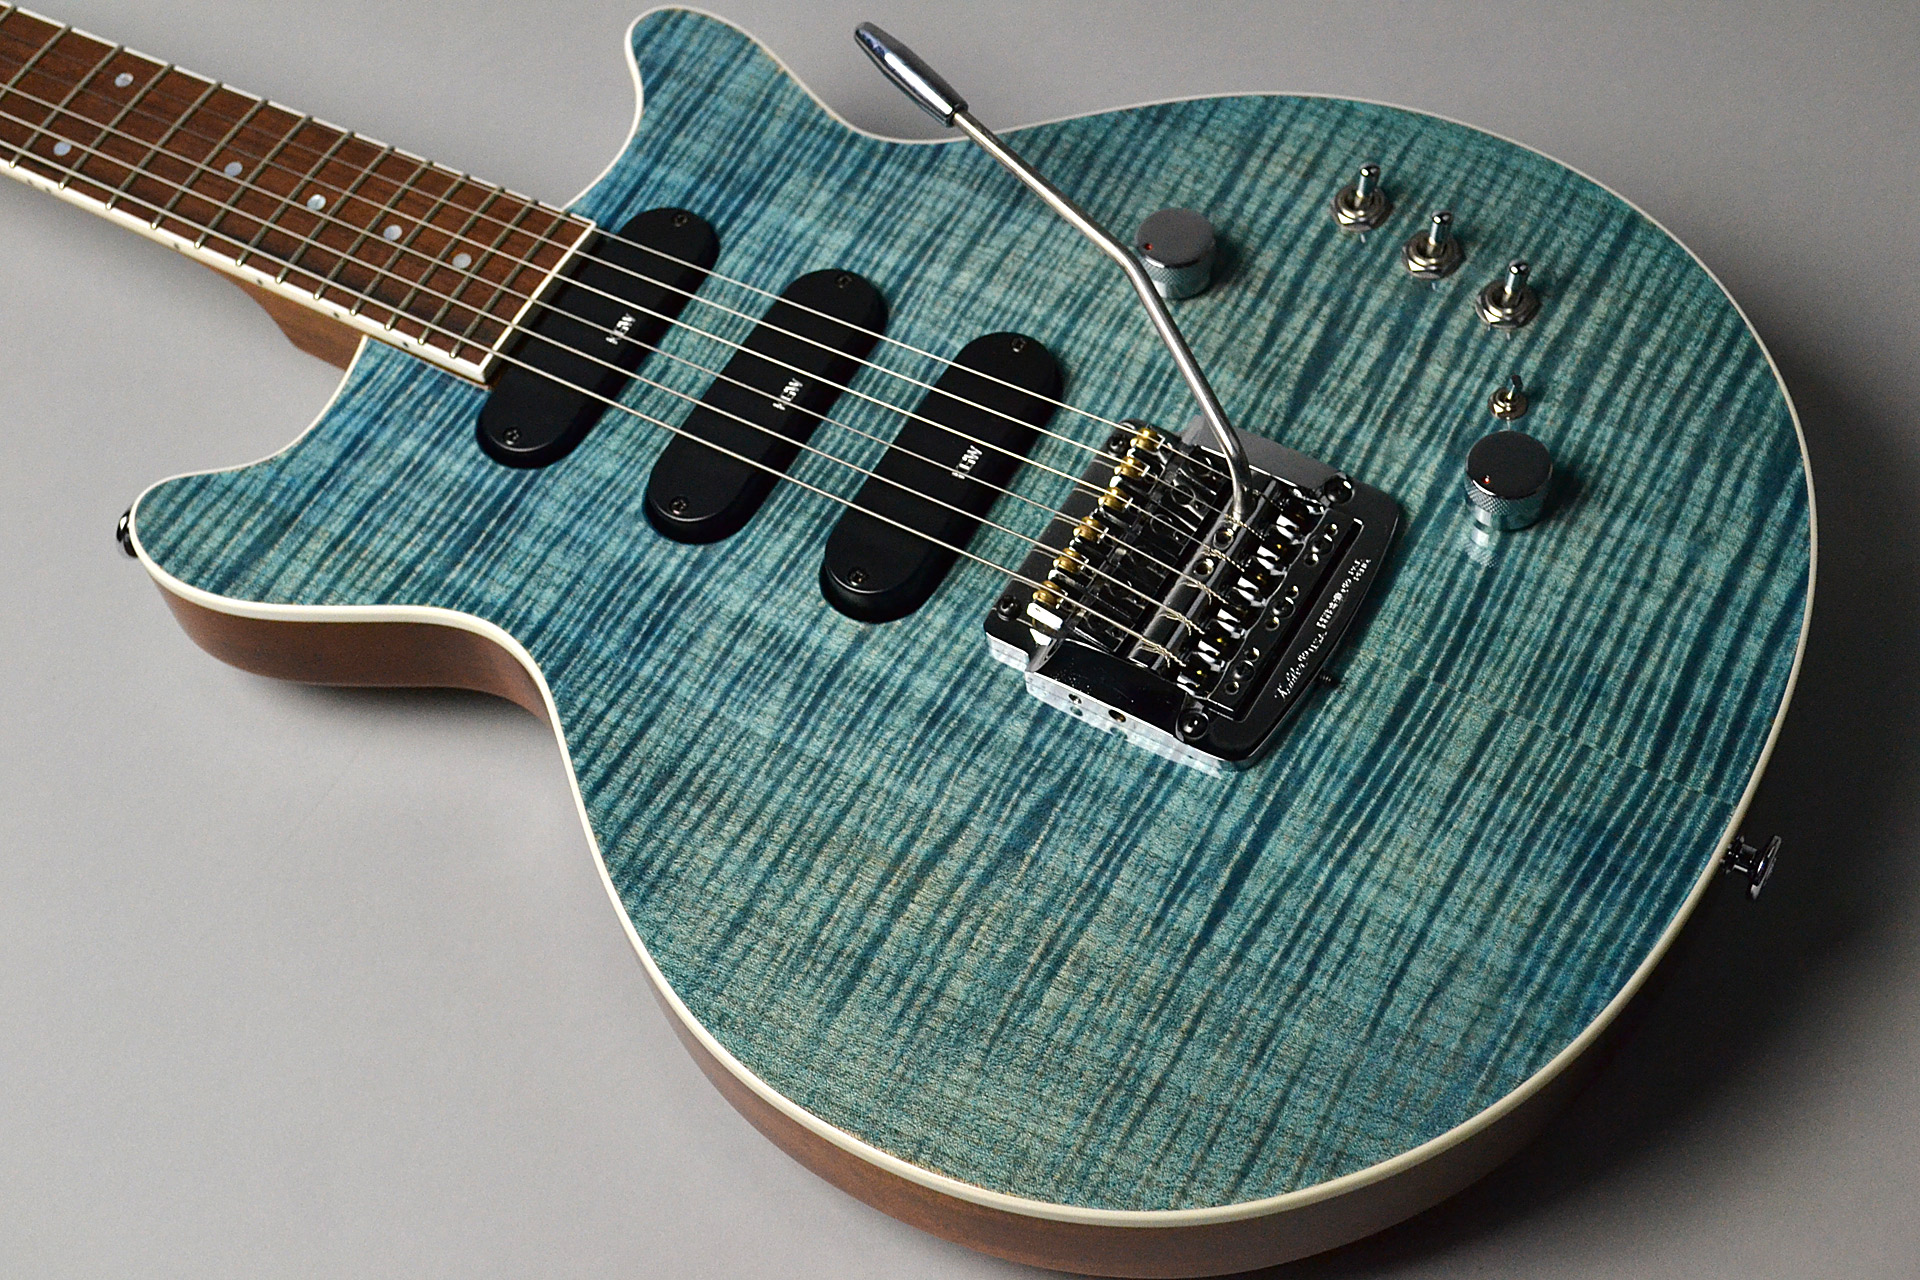 Kz One Solid 3S23 Kahler Figured Maple Blue Denimの全体画像(縦)